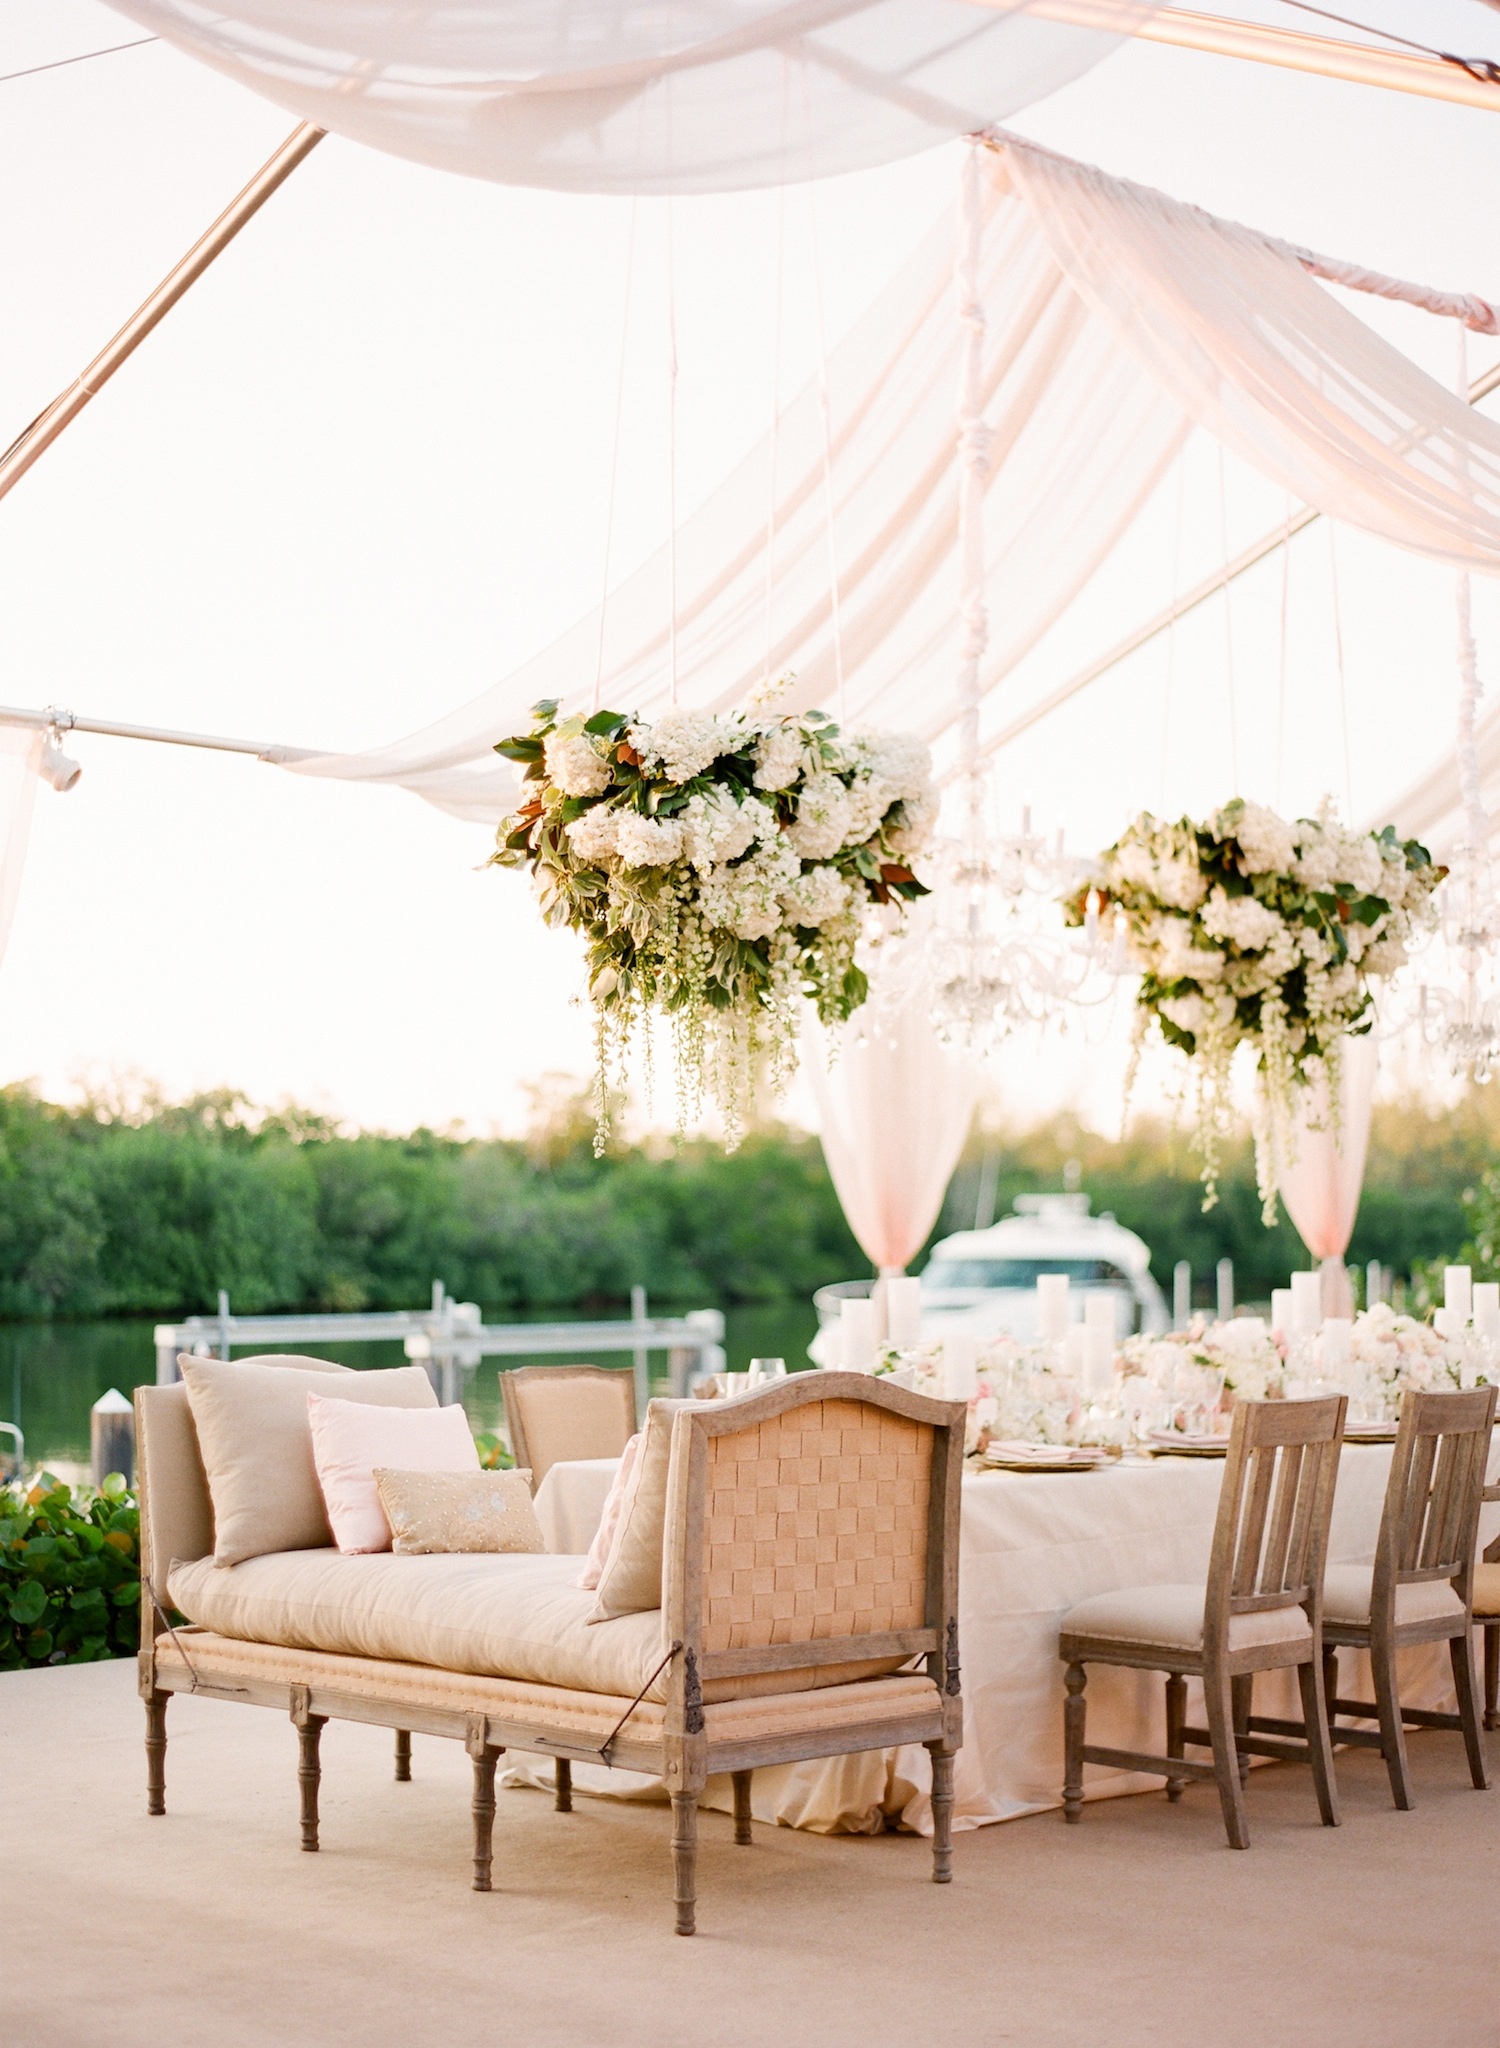 pink tent wedding with tan settee and chairs